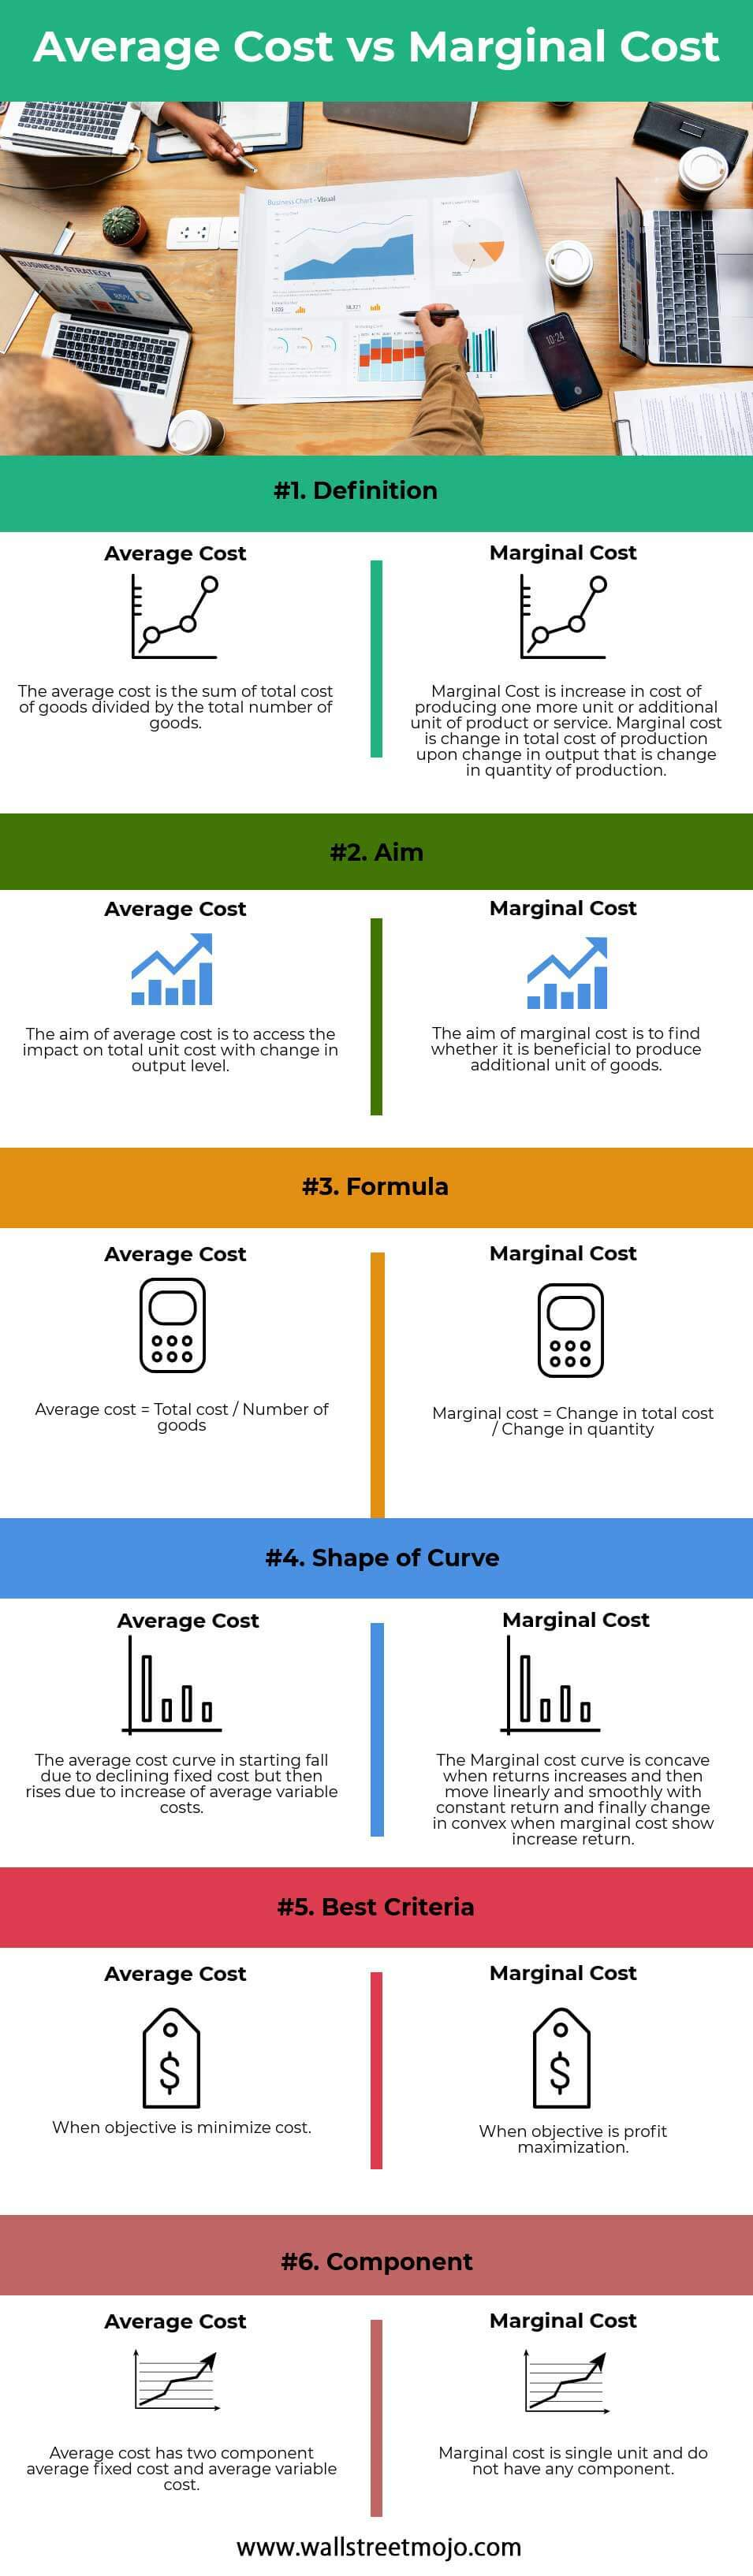 Average-Cost-vs-Marginal-Cost-info